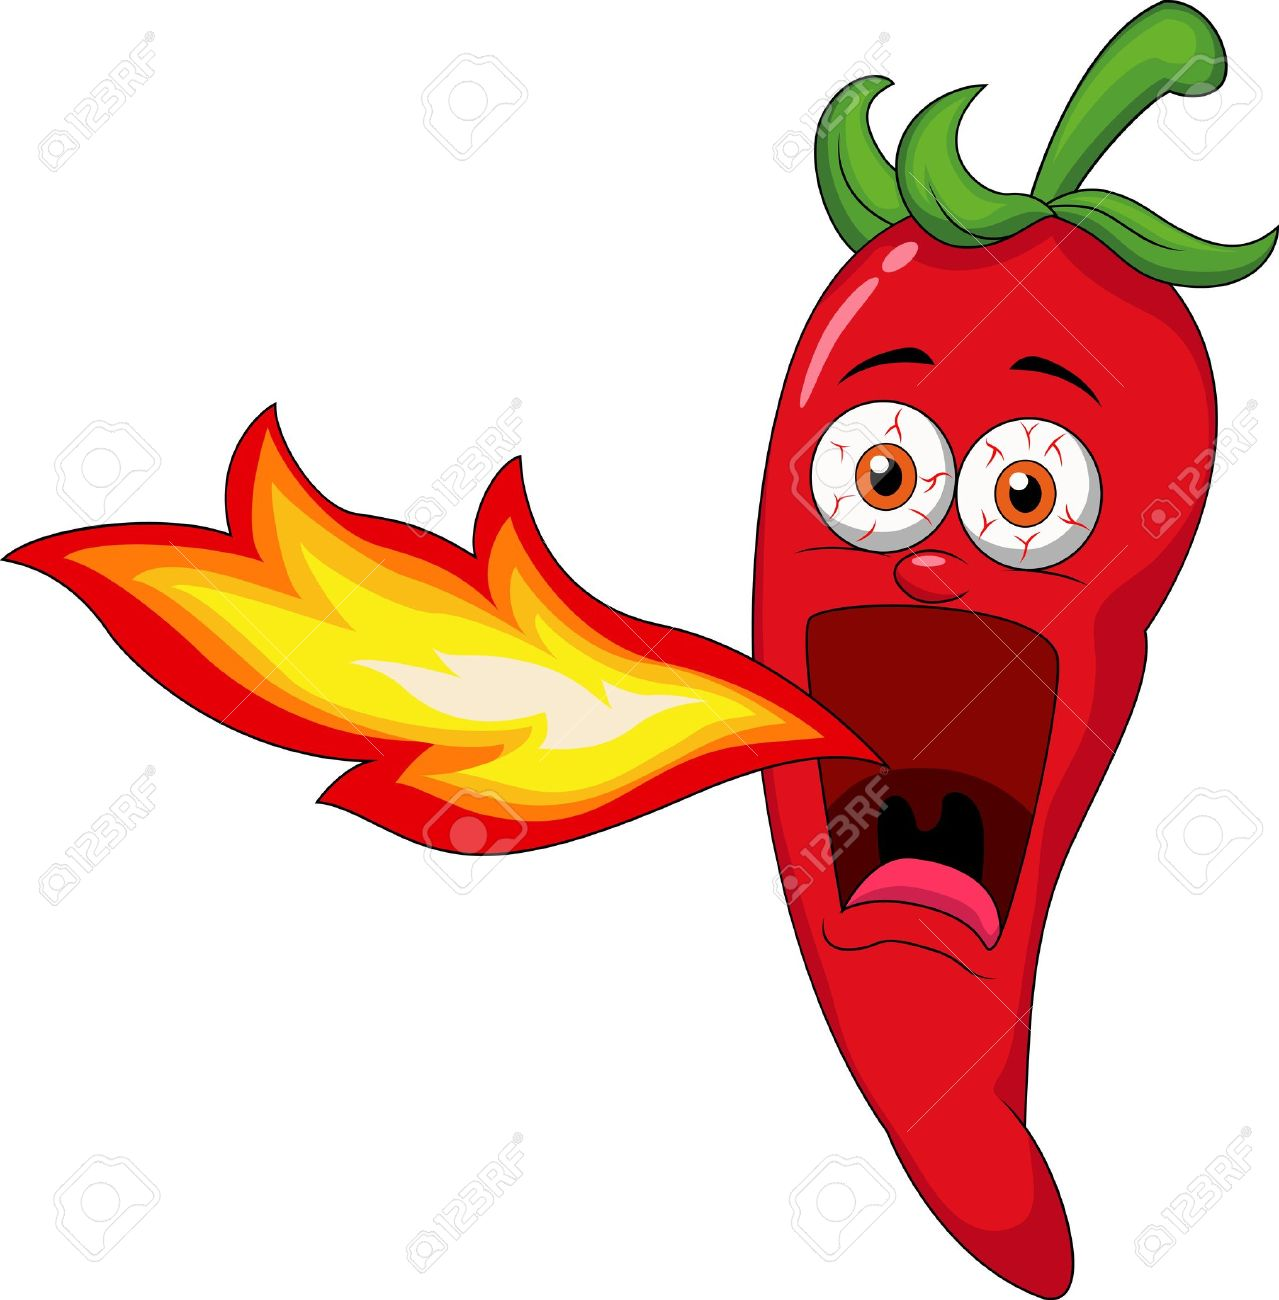 Chili Cartoon Character Breathing Fire - 18599389